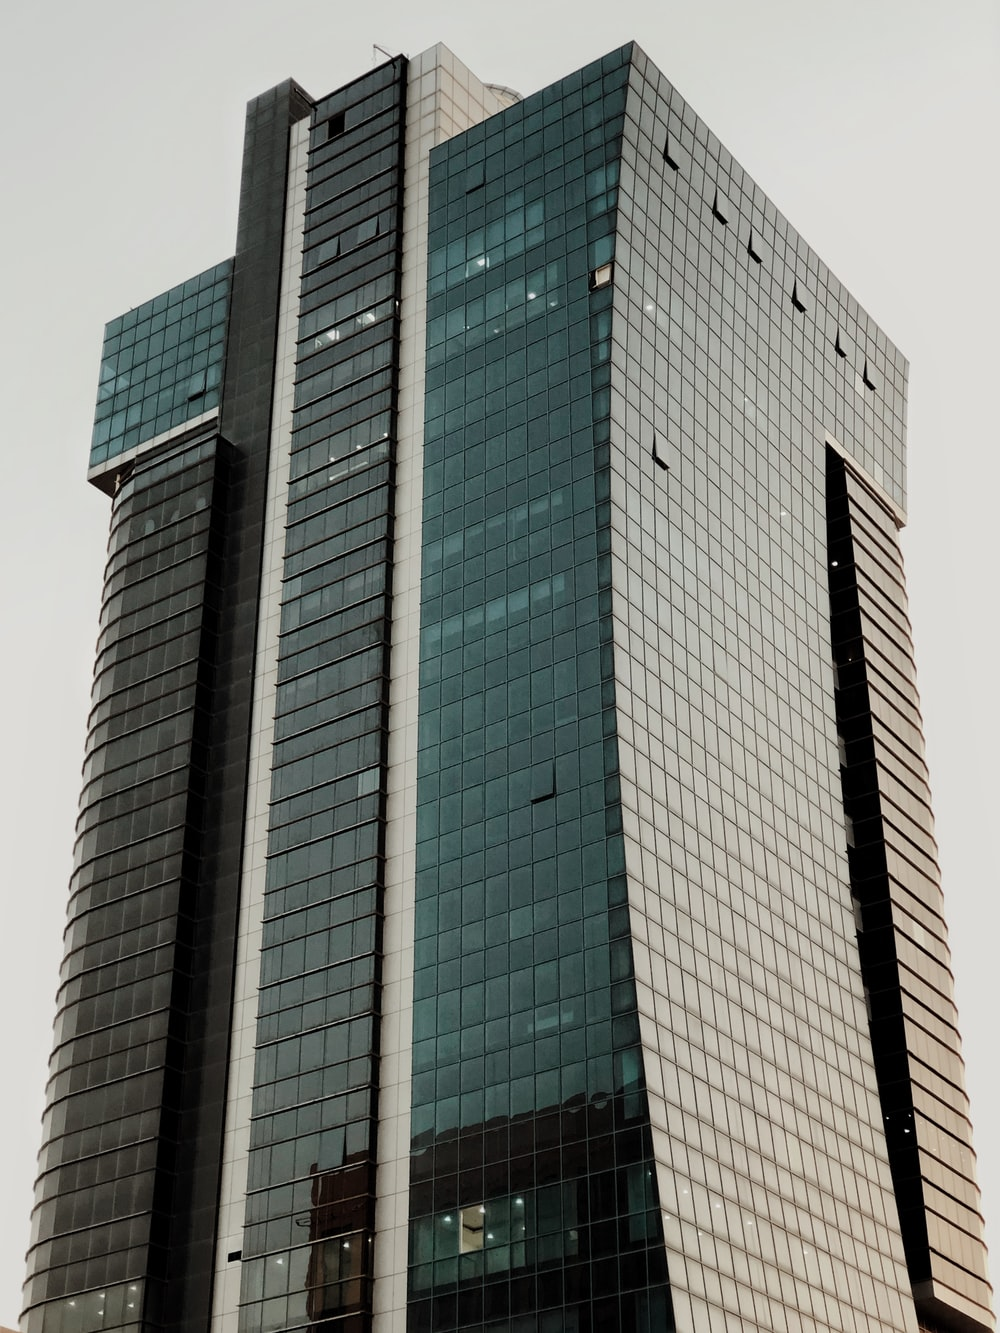 tall building during daytime